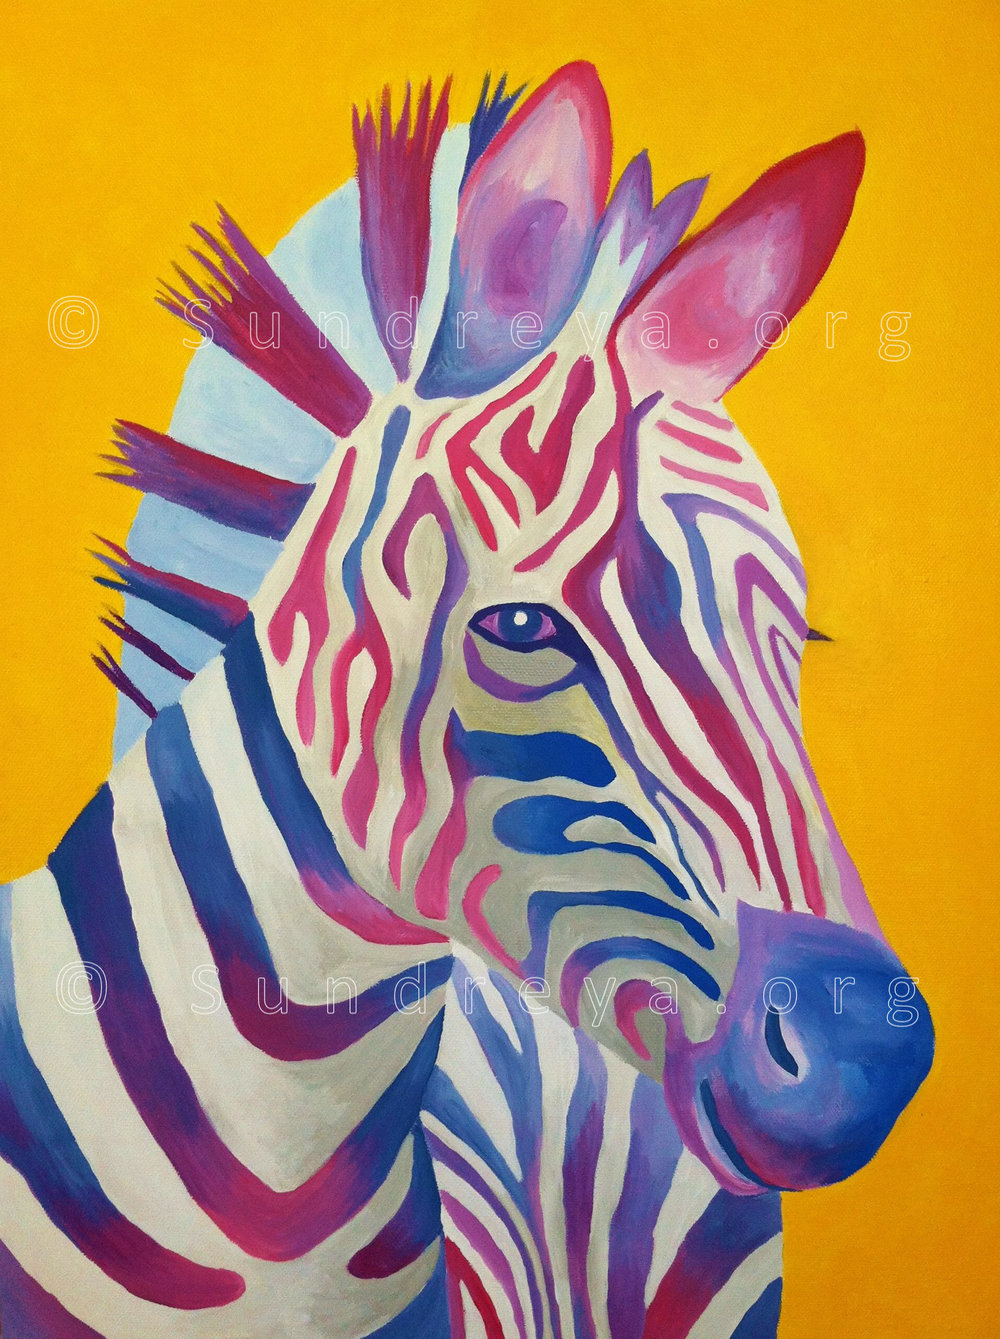 "Commissioned: Zelectric Zebra, 16 x 20"", acrylic"